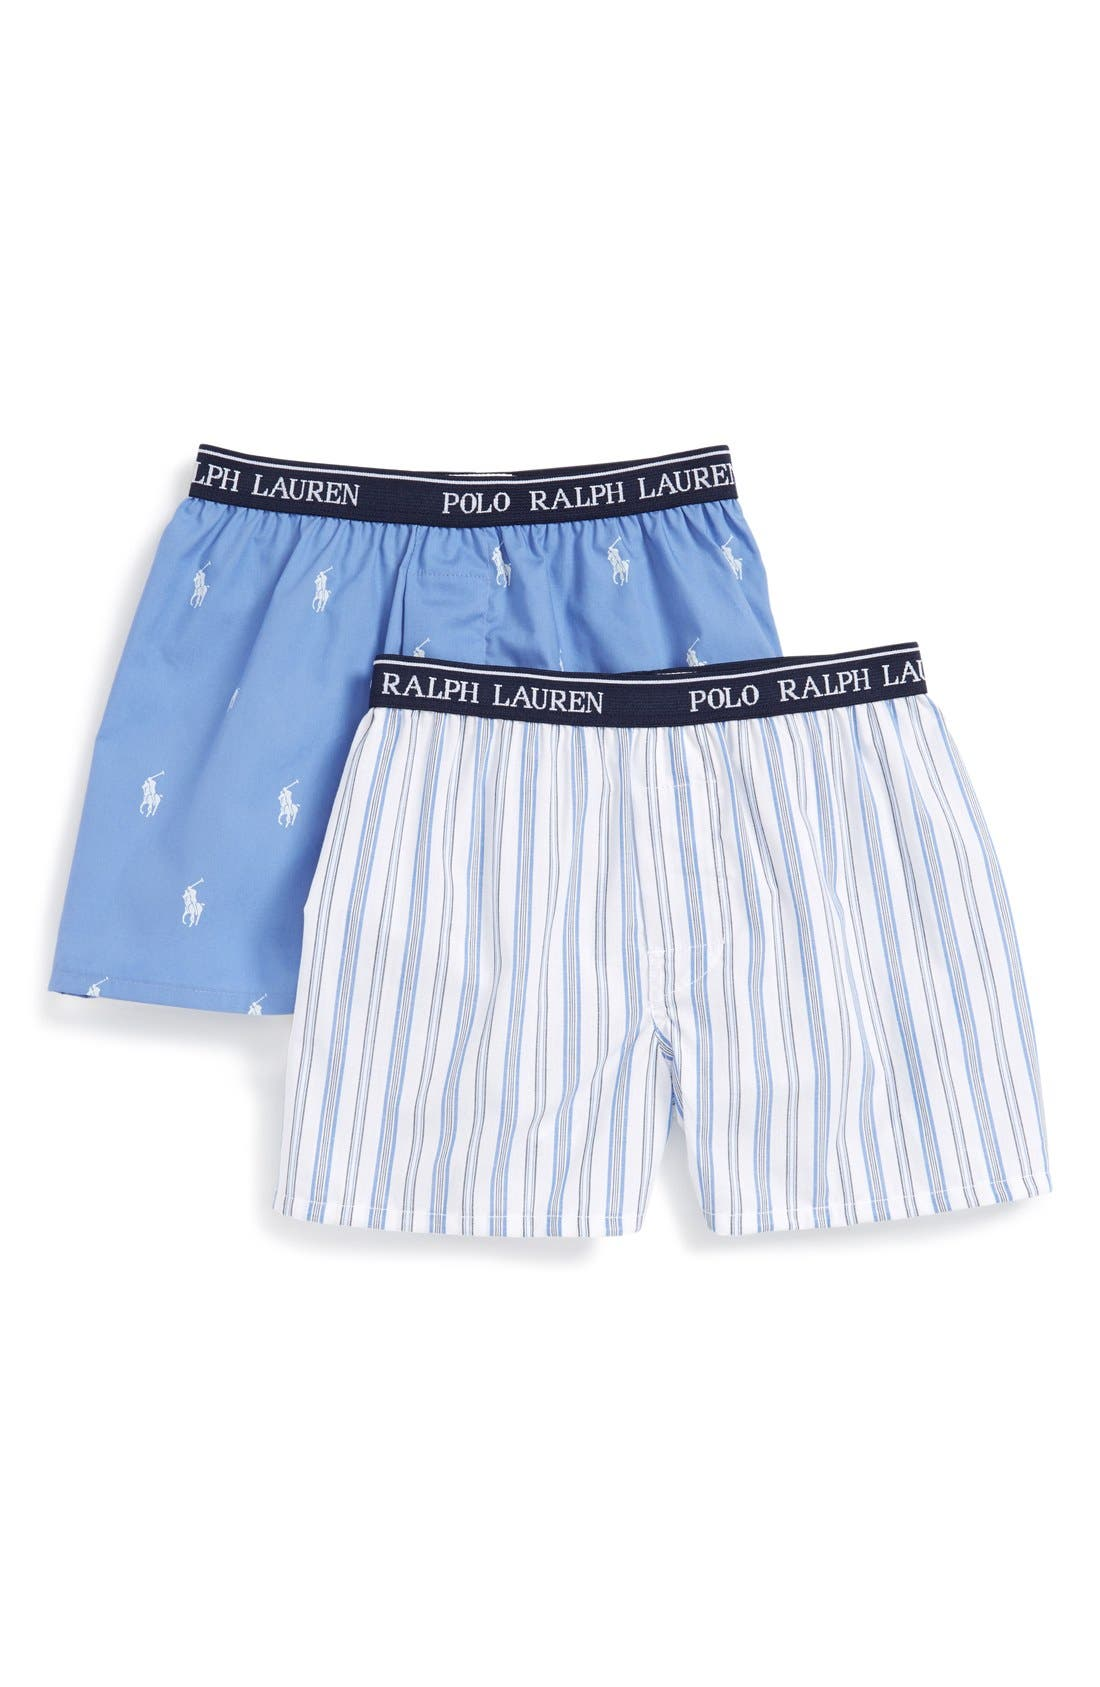 Alternate Image 1 Selected - Polo Ralph Lauren Woven Boxers (2-Pack) (Big Boys)